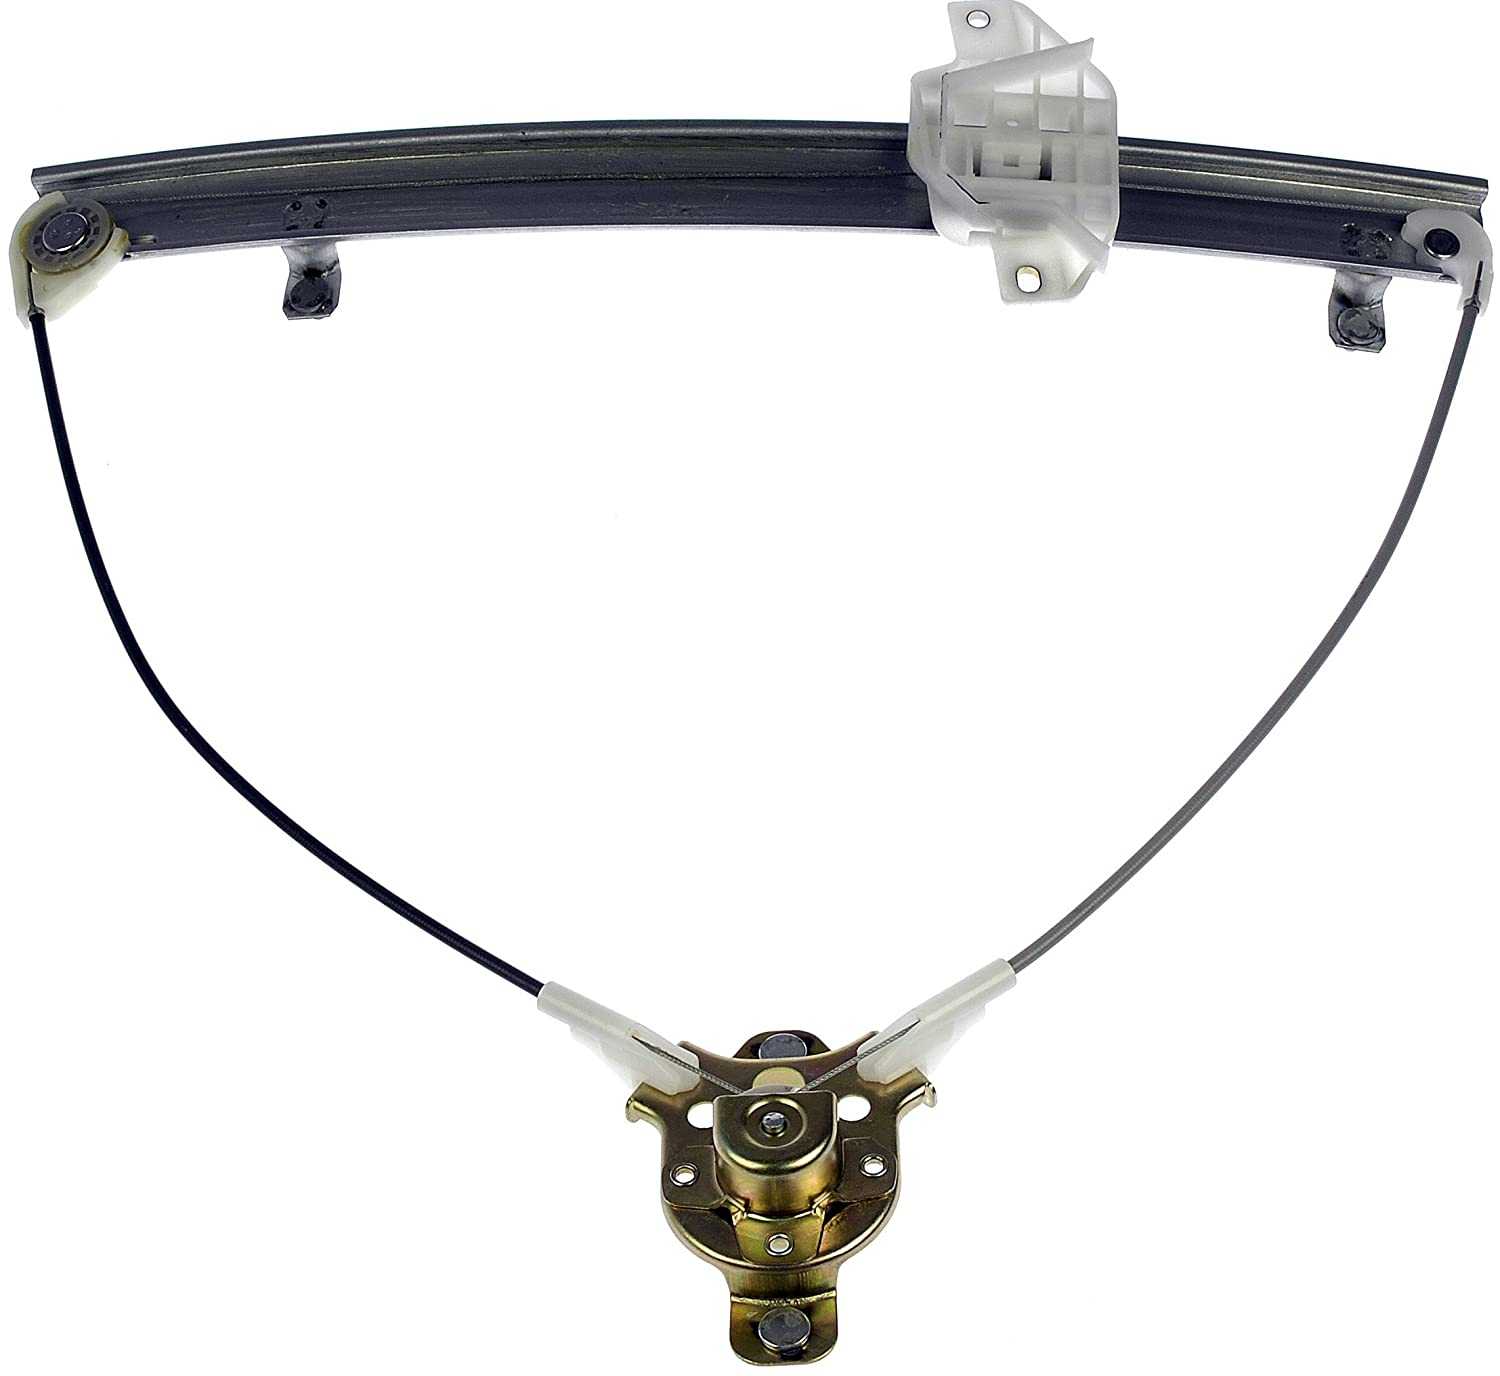 Dorman 740-246 Hyundai Accent Front Driver Side Manual Window Regulator RB740246.10217